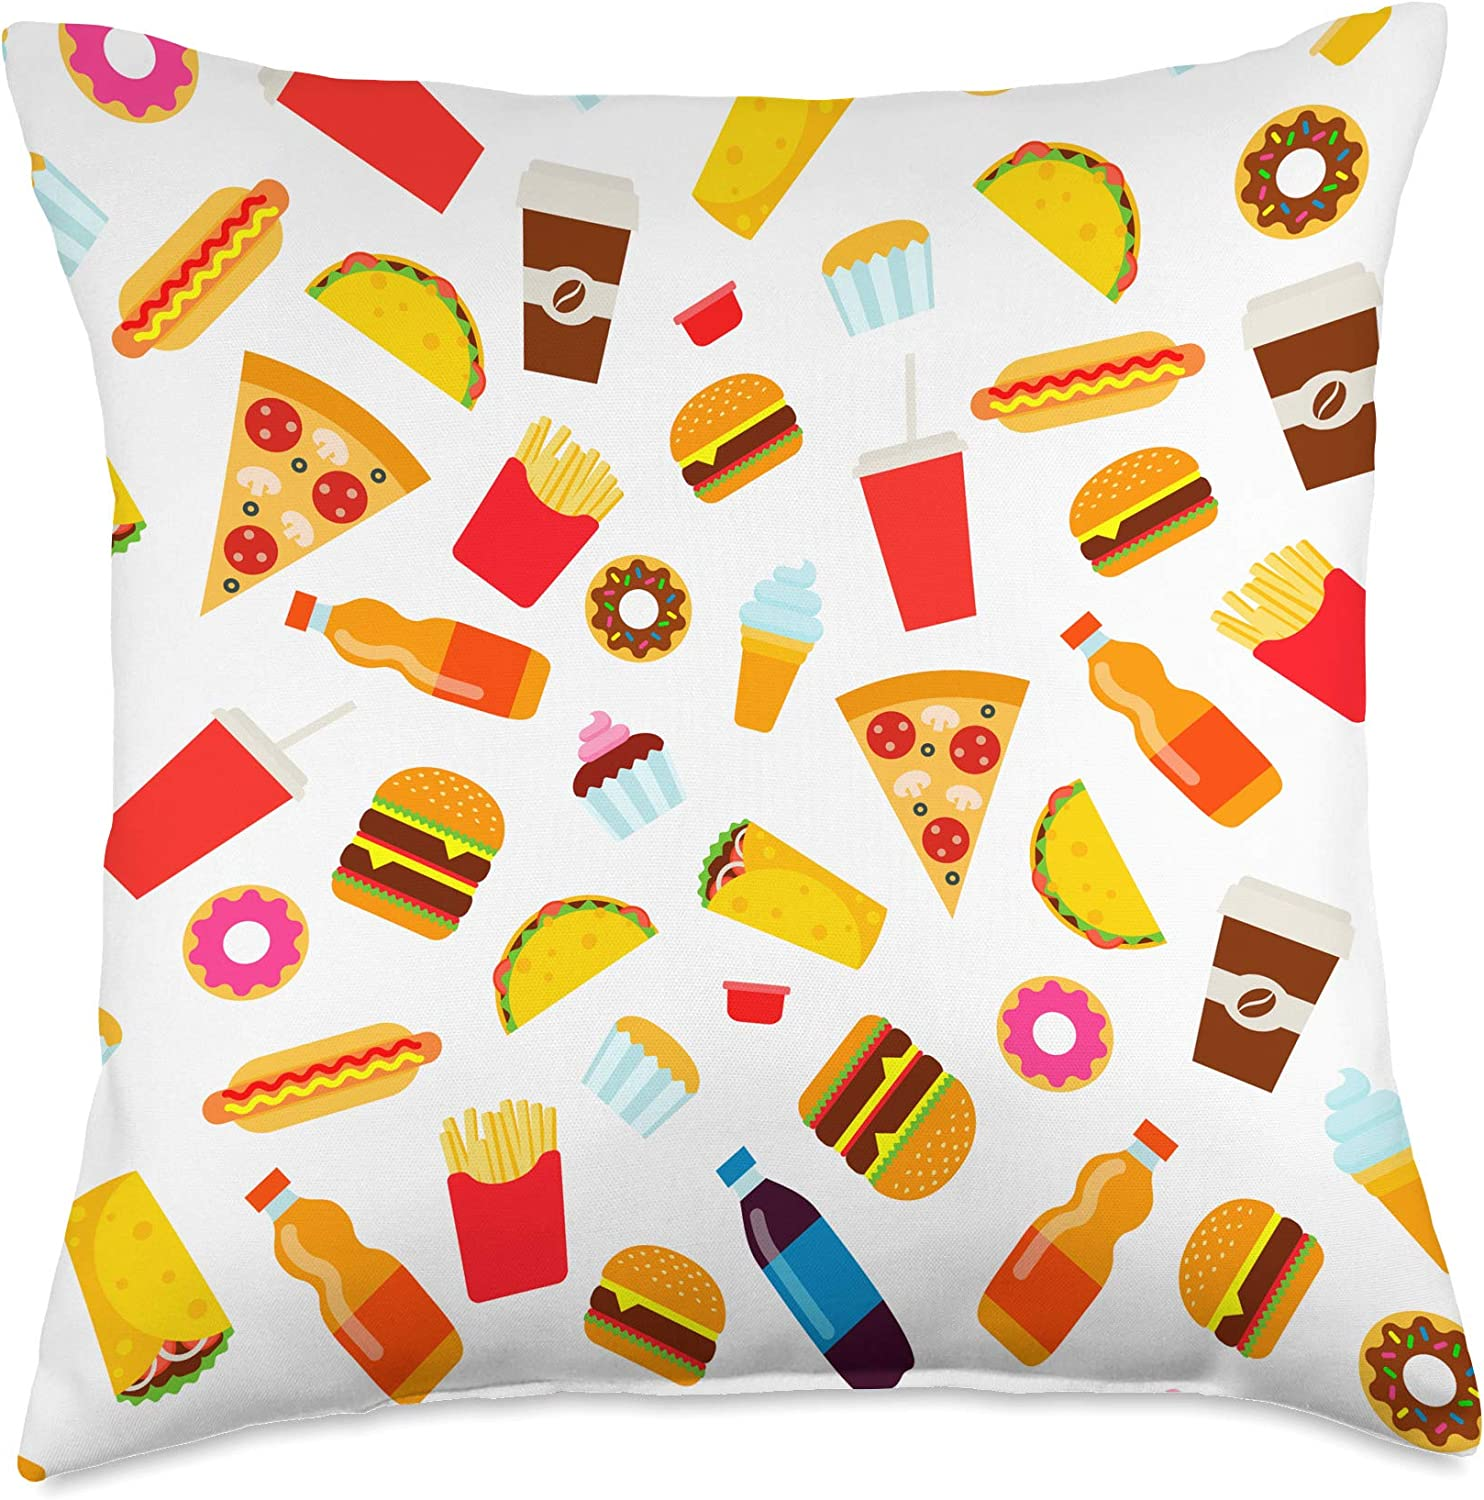 Blisss Foodie Fast Food Hamburger Pizza Hot Dog Tacos Throw Pillow, 18x18, Multicolor